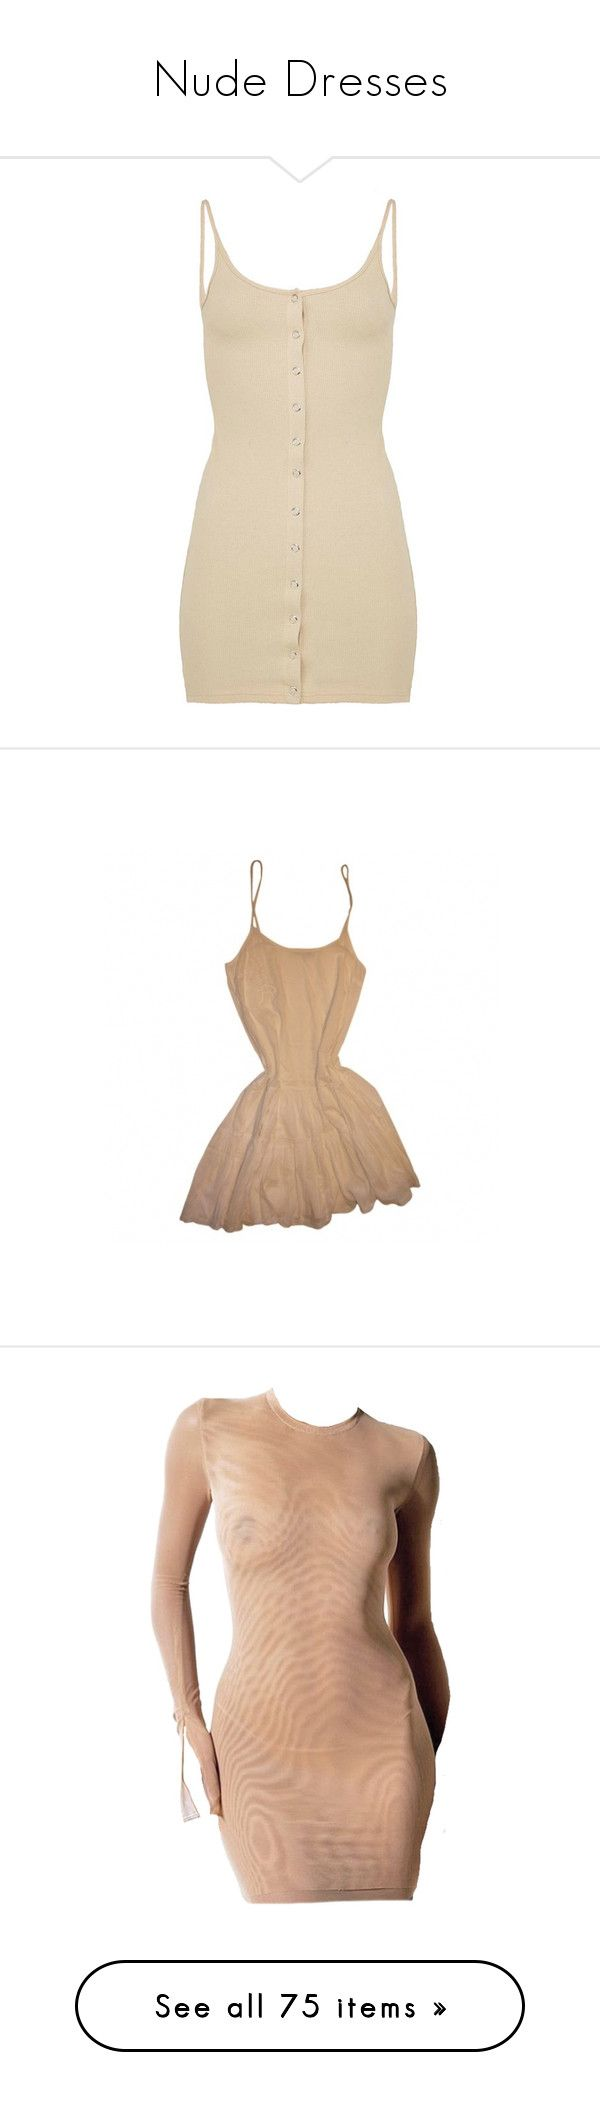 """Nude Dresses"" by styledbyro ❤ liked on Polyvore featuring dresses, beige dress, ribbed bodycon dress, silver dresses, stretch dresses, brown bodycon dress, tops, maje dress, maje and beige cocktail dress"